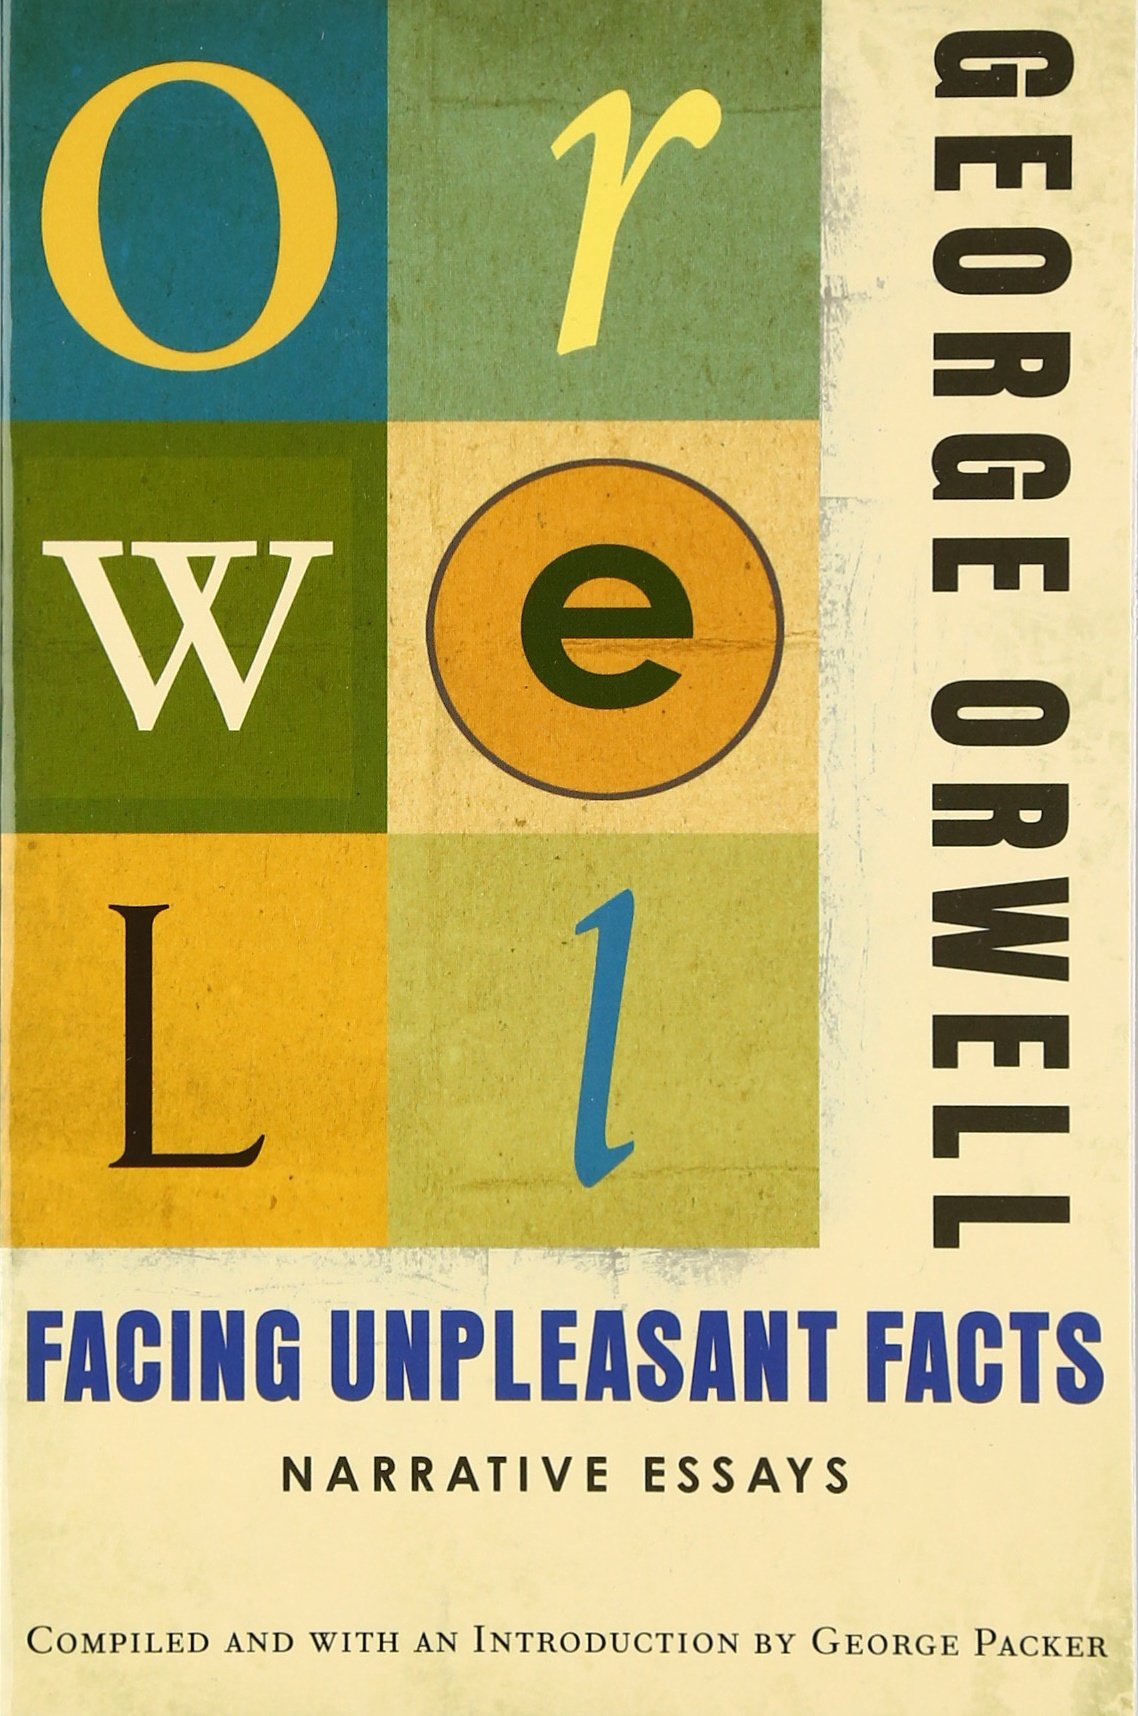 facing unpleasant facts narrative essays george orwell george facing unpleasant facts narrative essays george orwell george packer 9780156033138 english literature